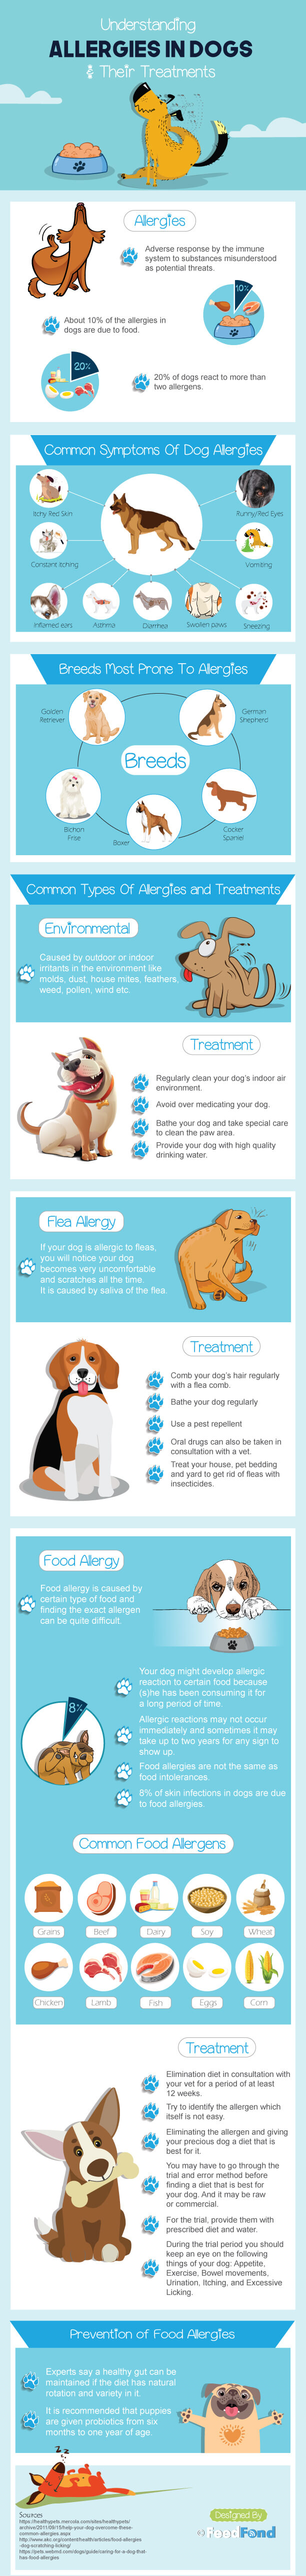 Understanding Allergies in Dogs & Their Treatments